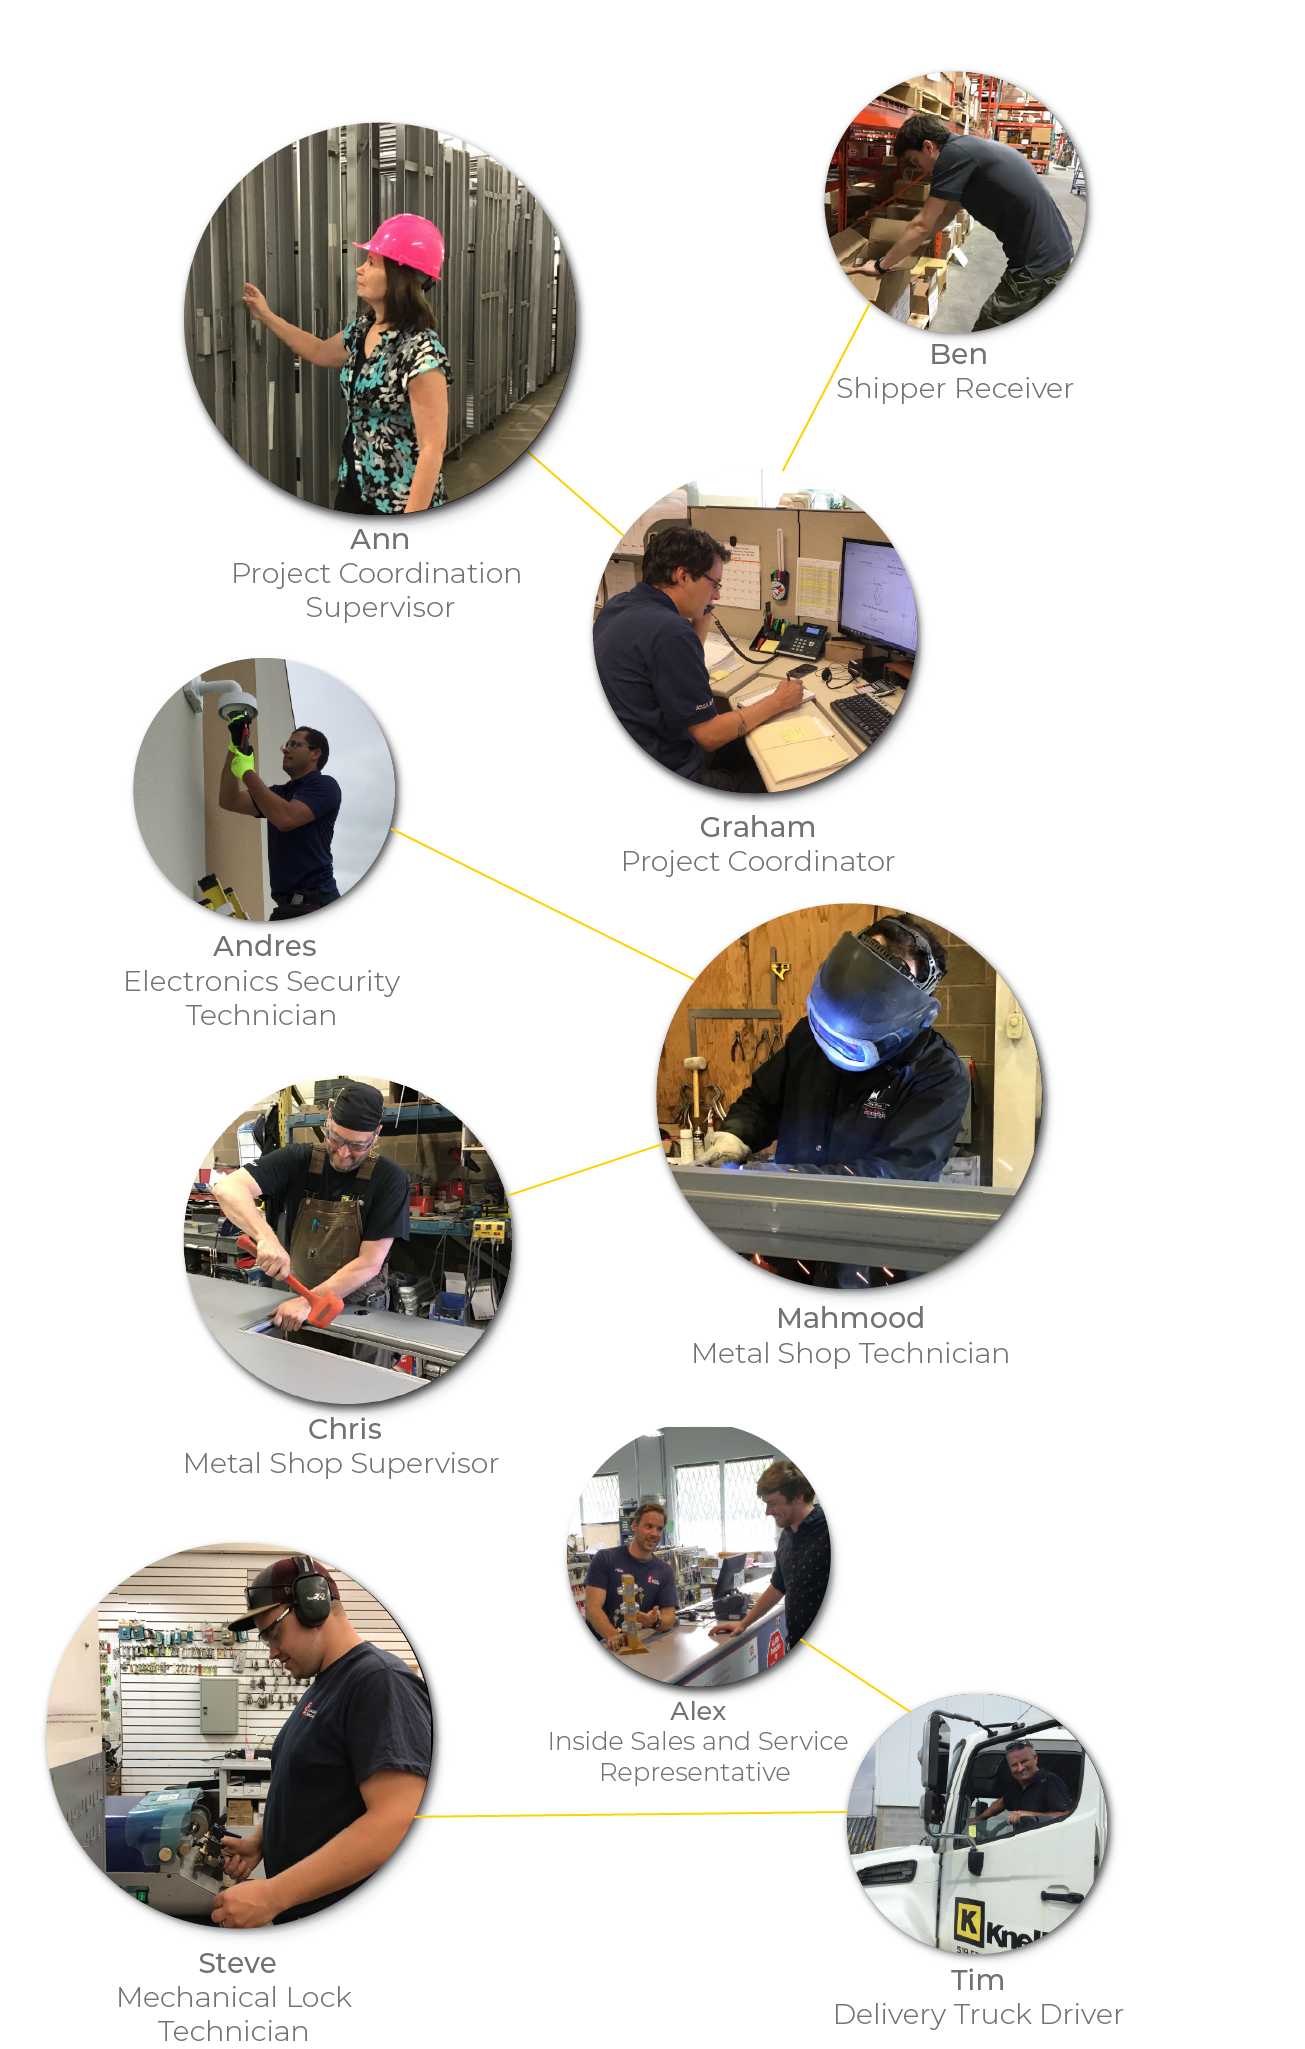 Image of Knell's employees in a variety of company positions such as: shipper receiver, metal shop technician, delivery truck driver, and sales representatives